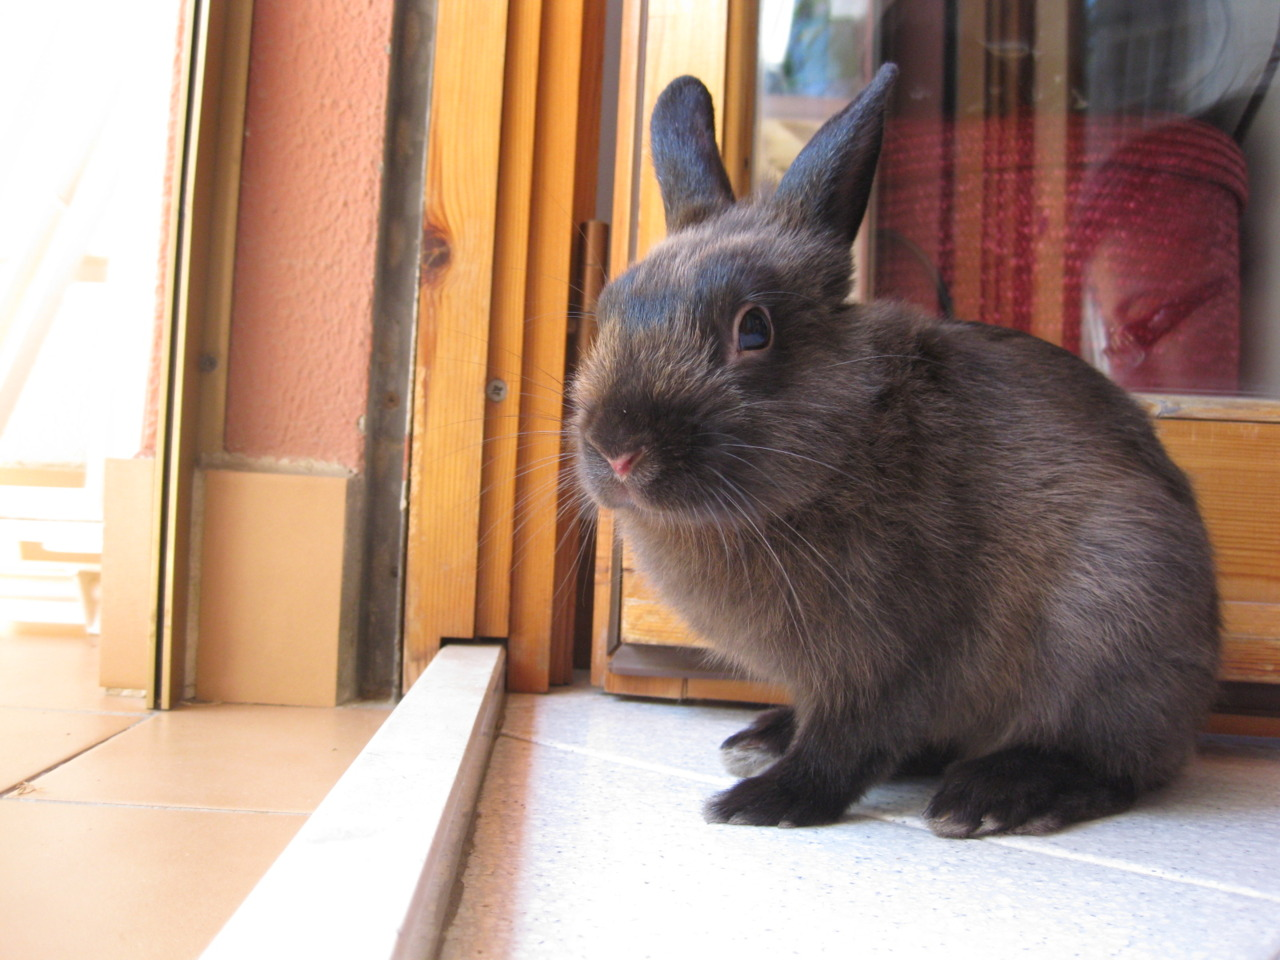 Bunny Hesitates to Go Outside; Someone May Open Up the Fridge in the Meantime!